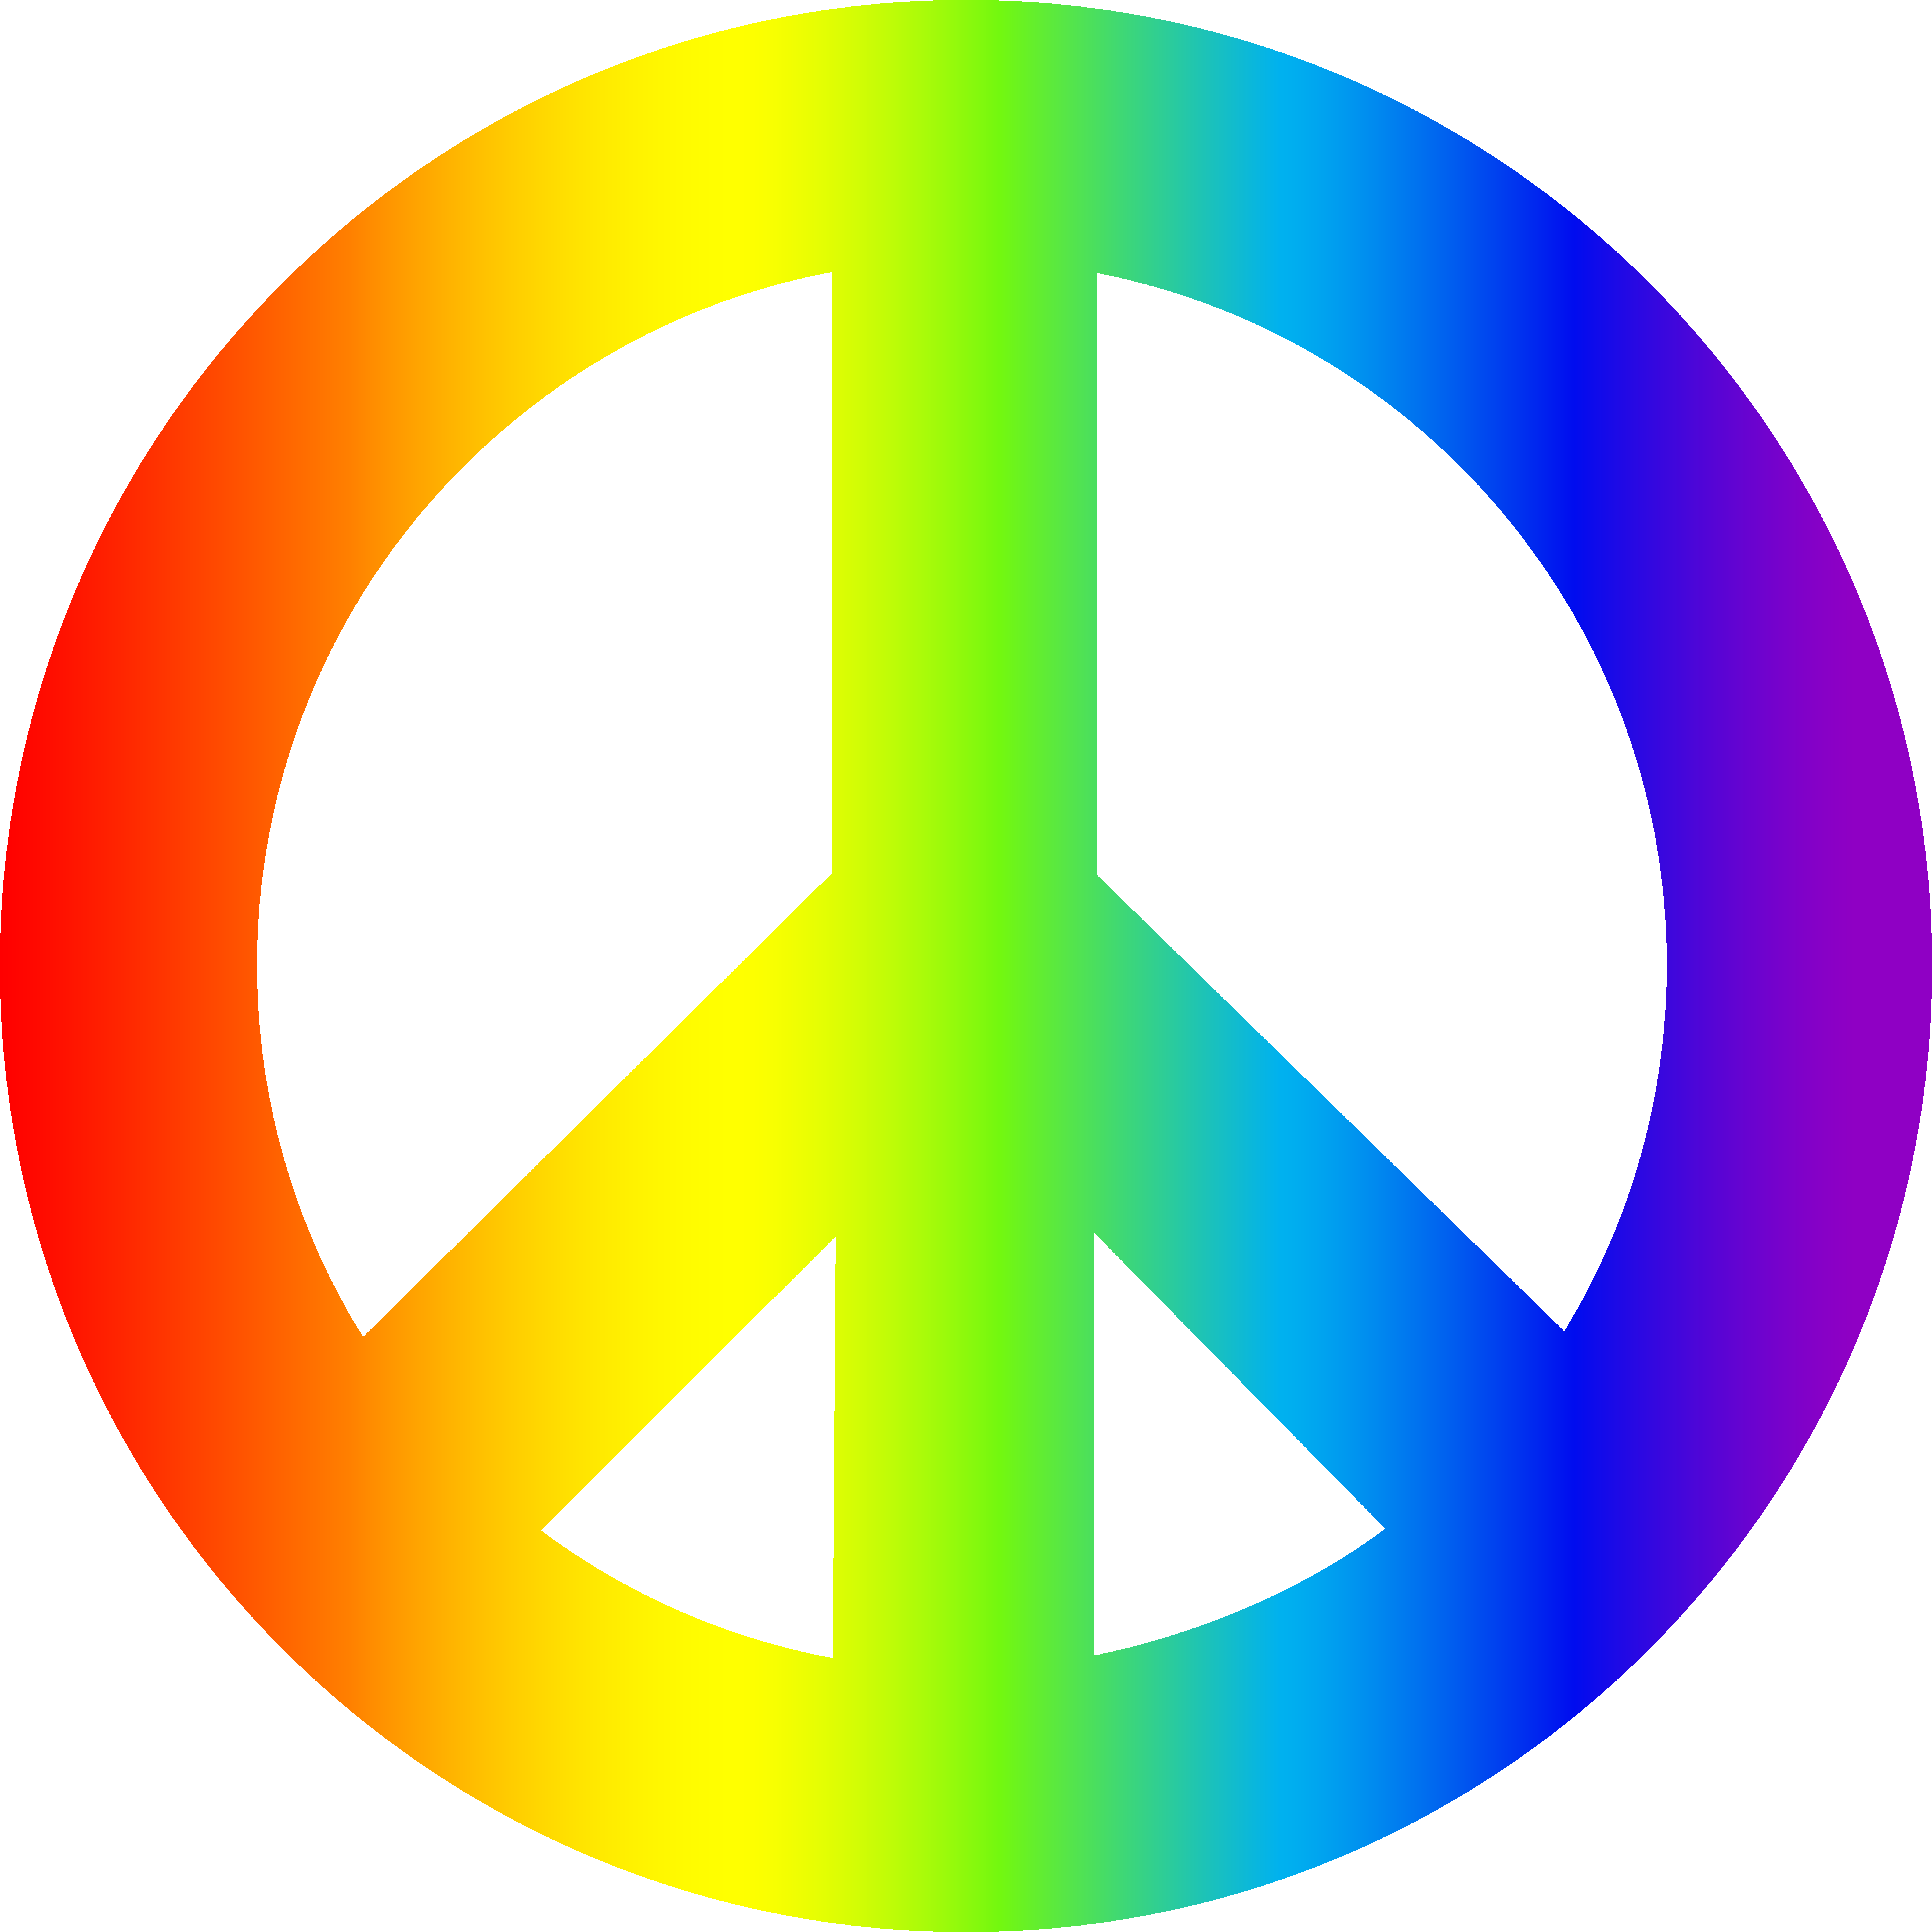 Peace clipart peaceful life. Colorful sign rainbow png